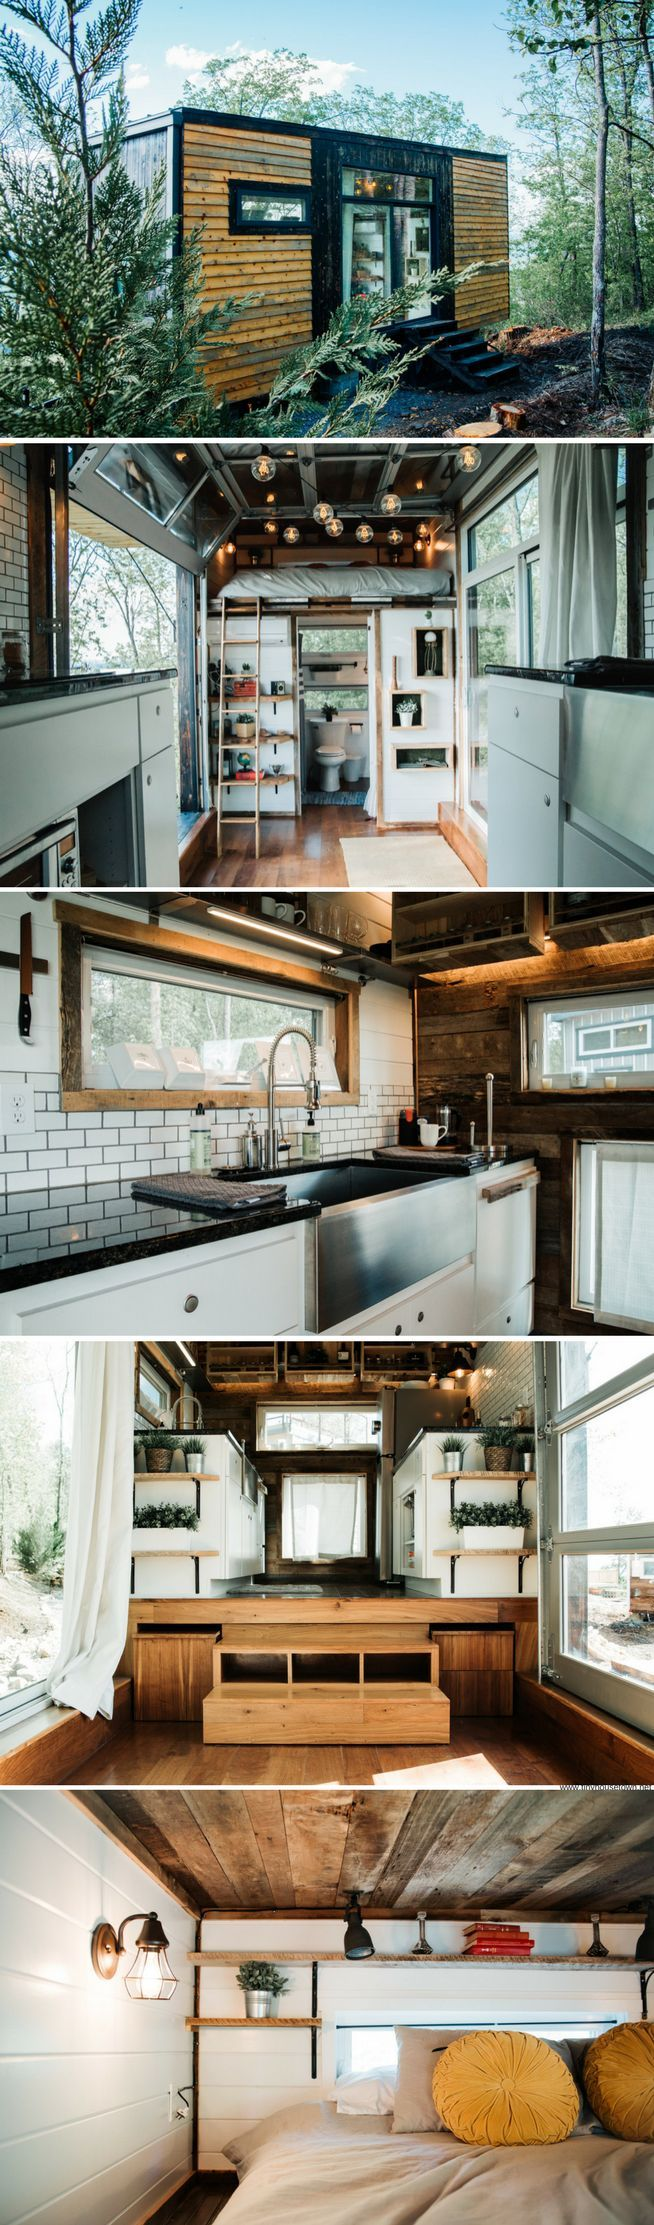 The Alpha at the Live A Little Chatt tiny house resort in Georgia #tinyhousekitchens